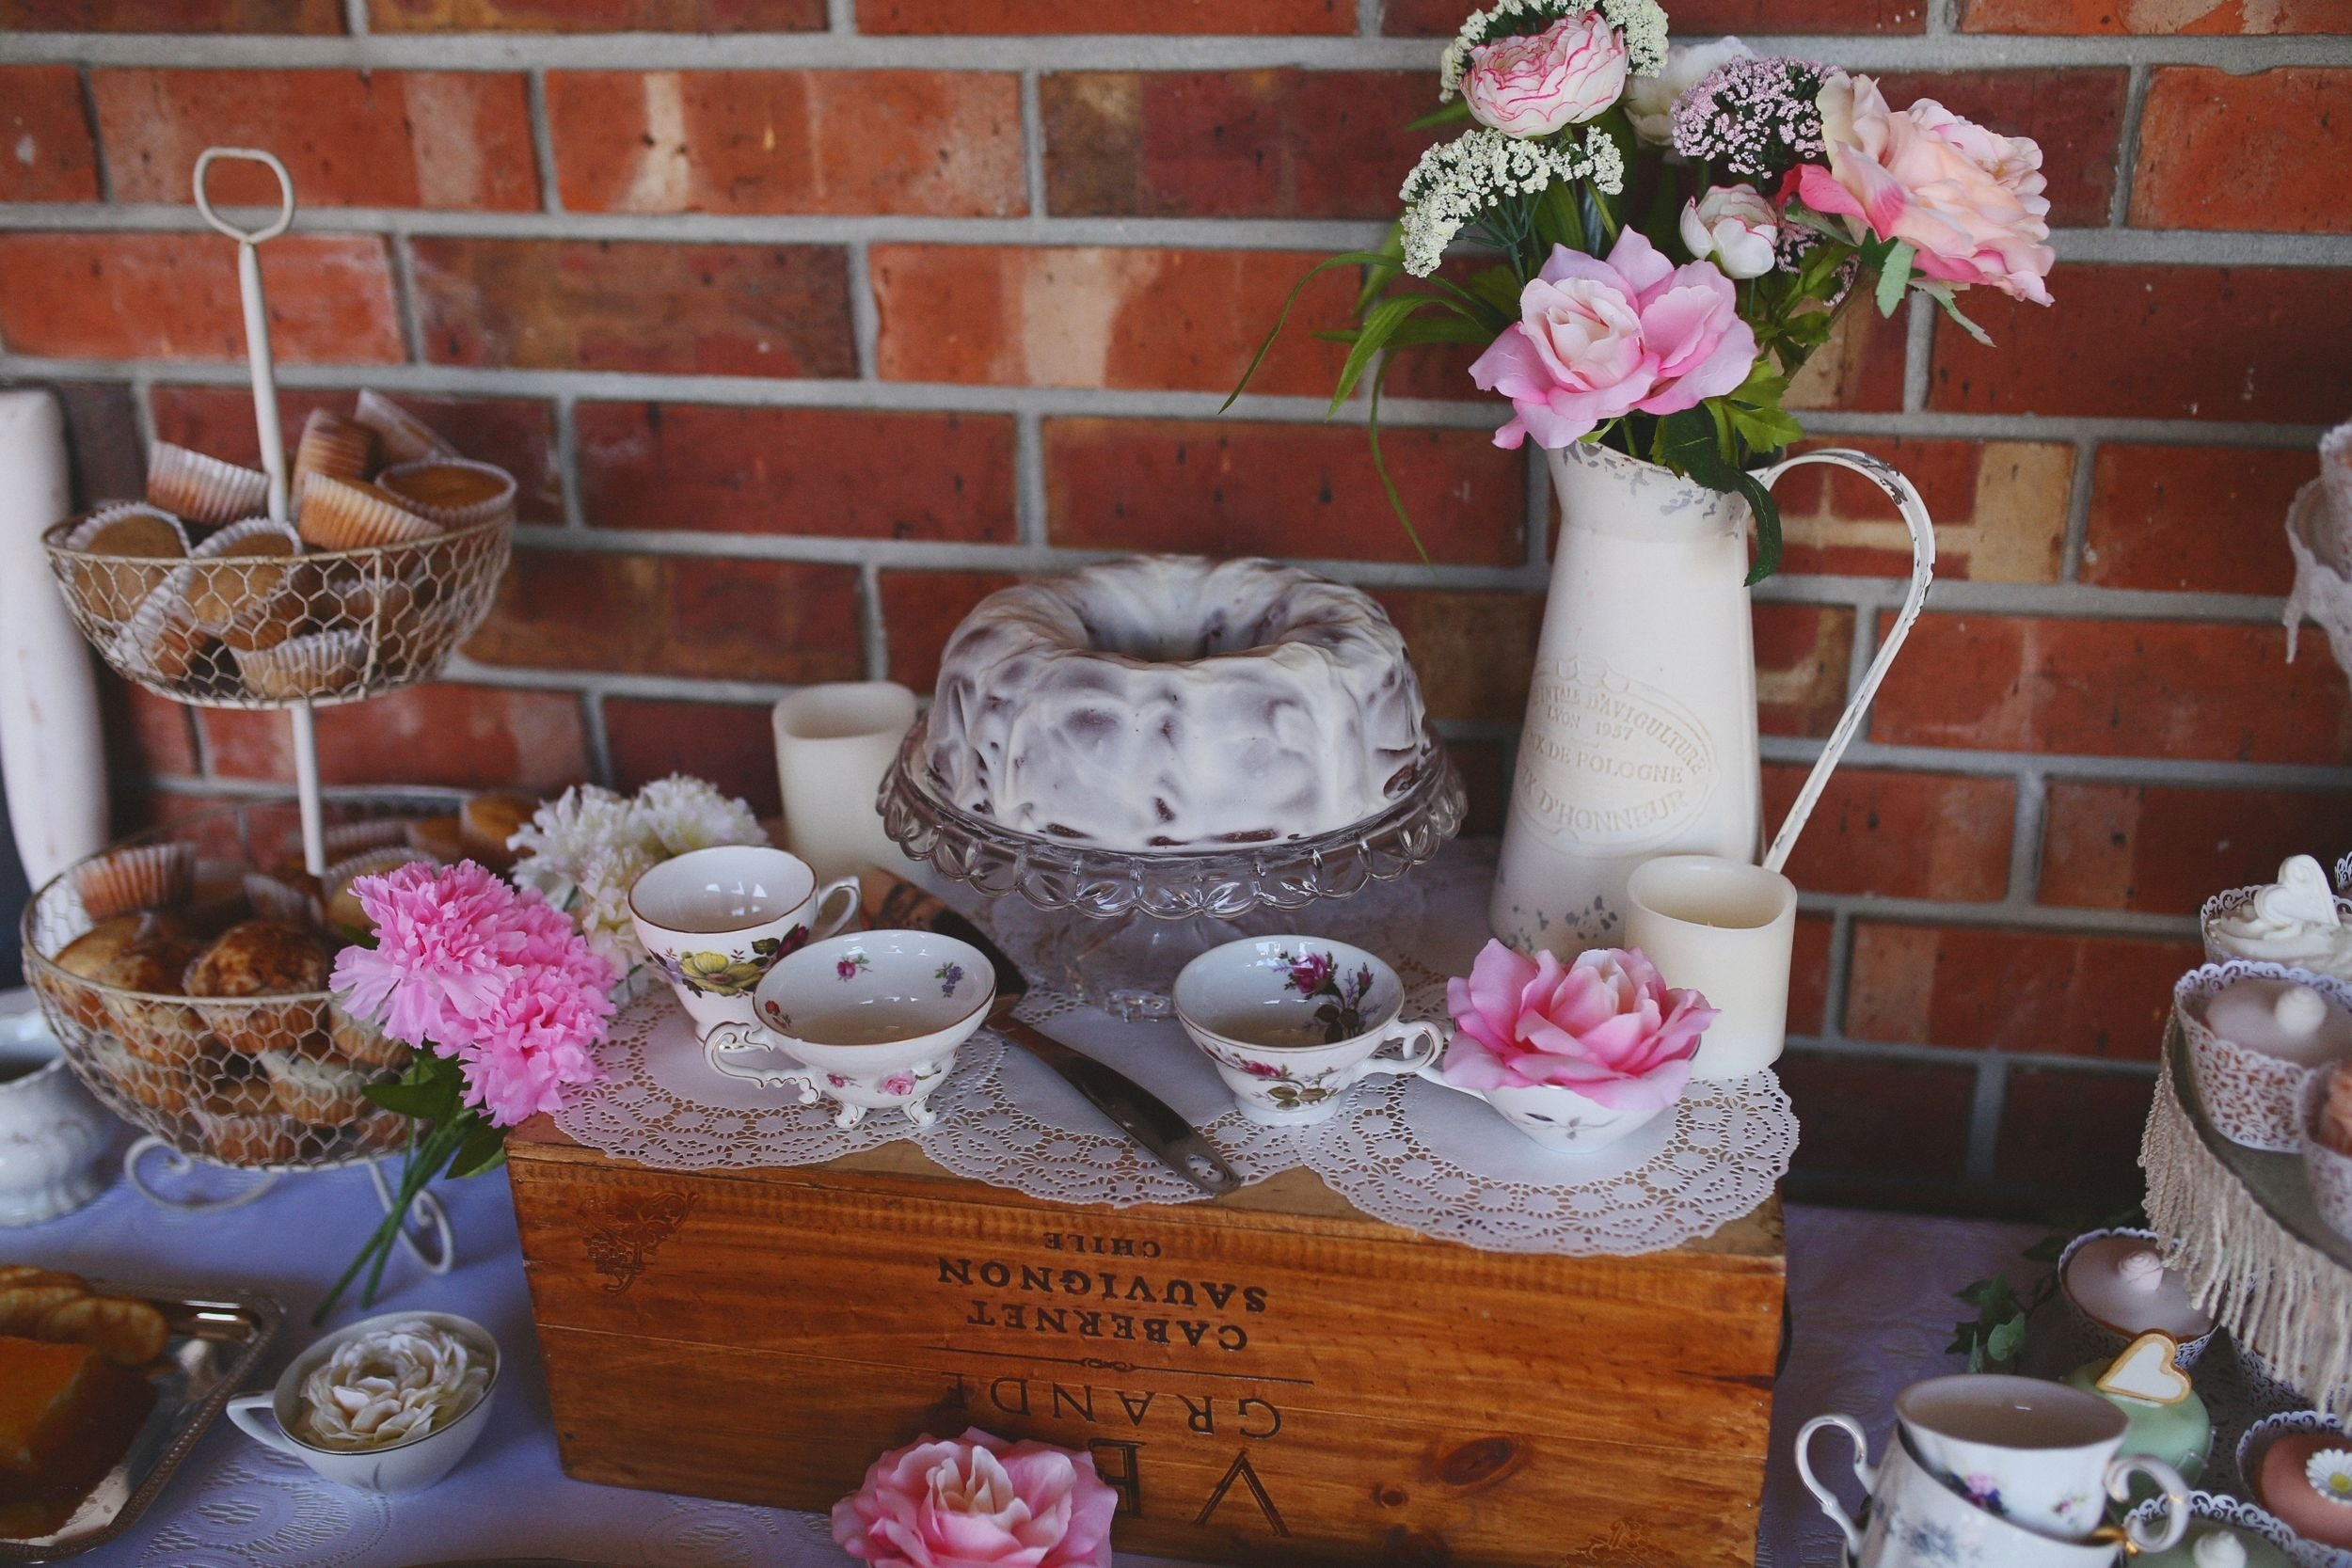 10 Attractive Shabby Chic Bridal Shower Ideas southern belle tea party themed bridal brunch shabby chic bridal 2 2020